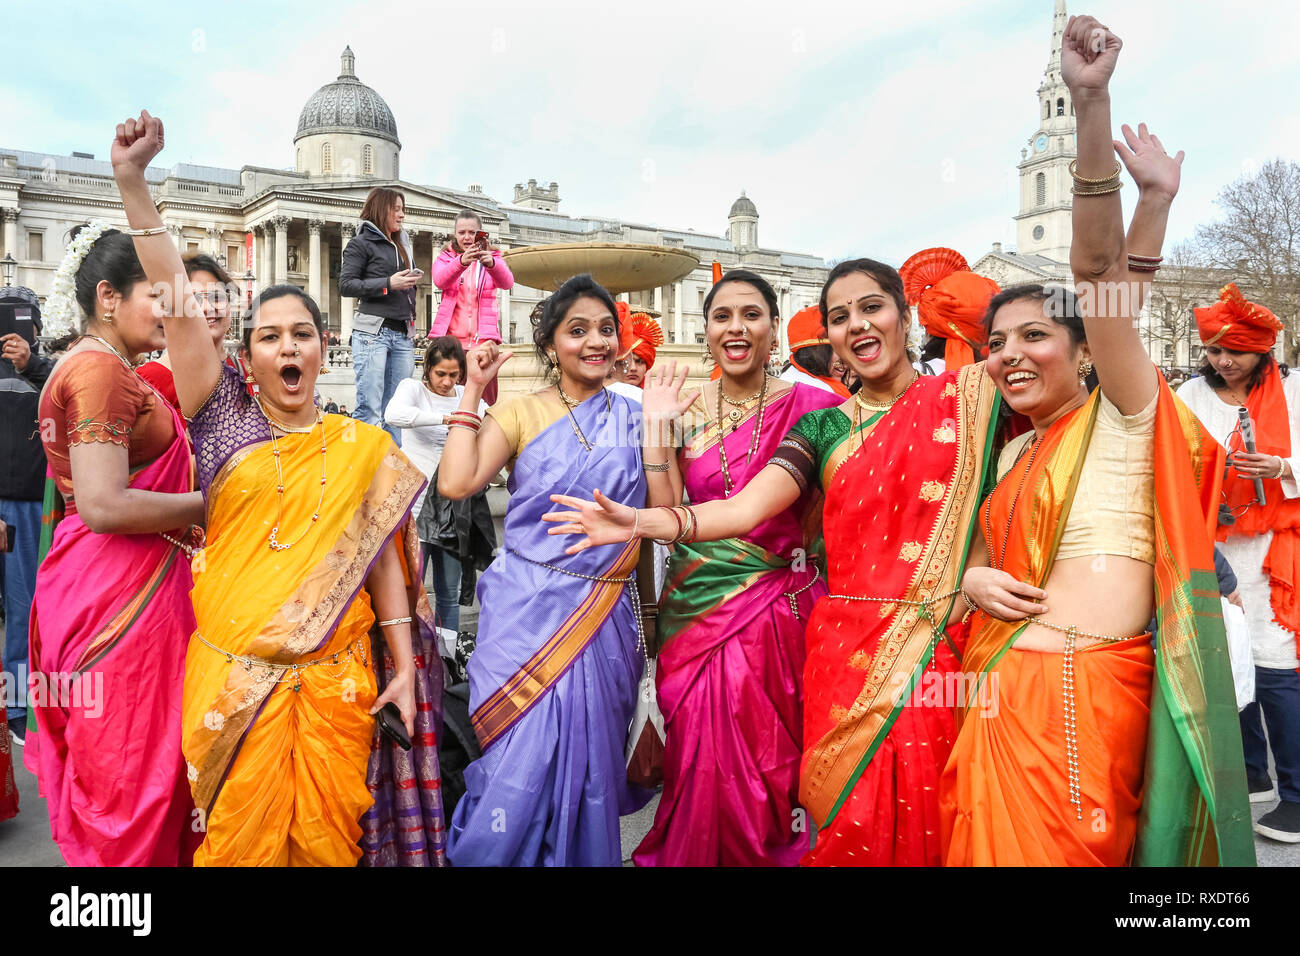 London, UK. 9th Mar, 2019. PAn Indian Dance Group proudly joins in with the march. rotesting women arrive in Trafalgar Square for the event speeches. Thousands of Women march through Central London from Oxford Street to Trafalgar Square to protest for an end to violence against women, for freedom and justice in the annual Million Women Rise event. The theme this year is 'Never Forgotten'. Credit: Imageplotter/Alamy Live News Credit: Imageplotter/Alamy Live News - Stock Image